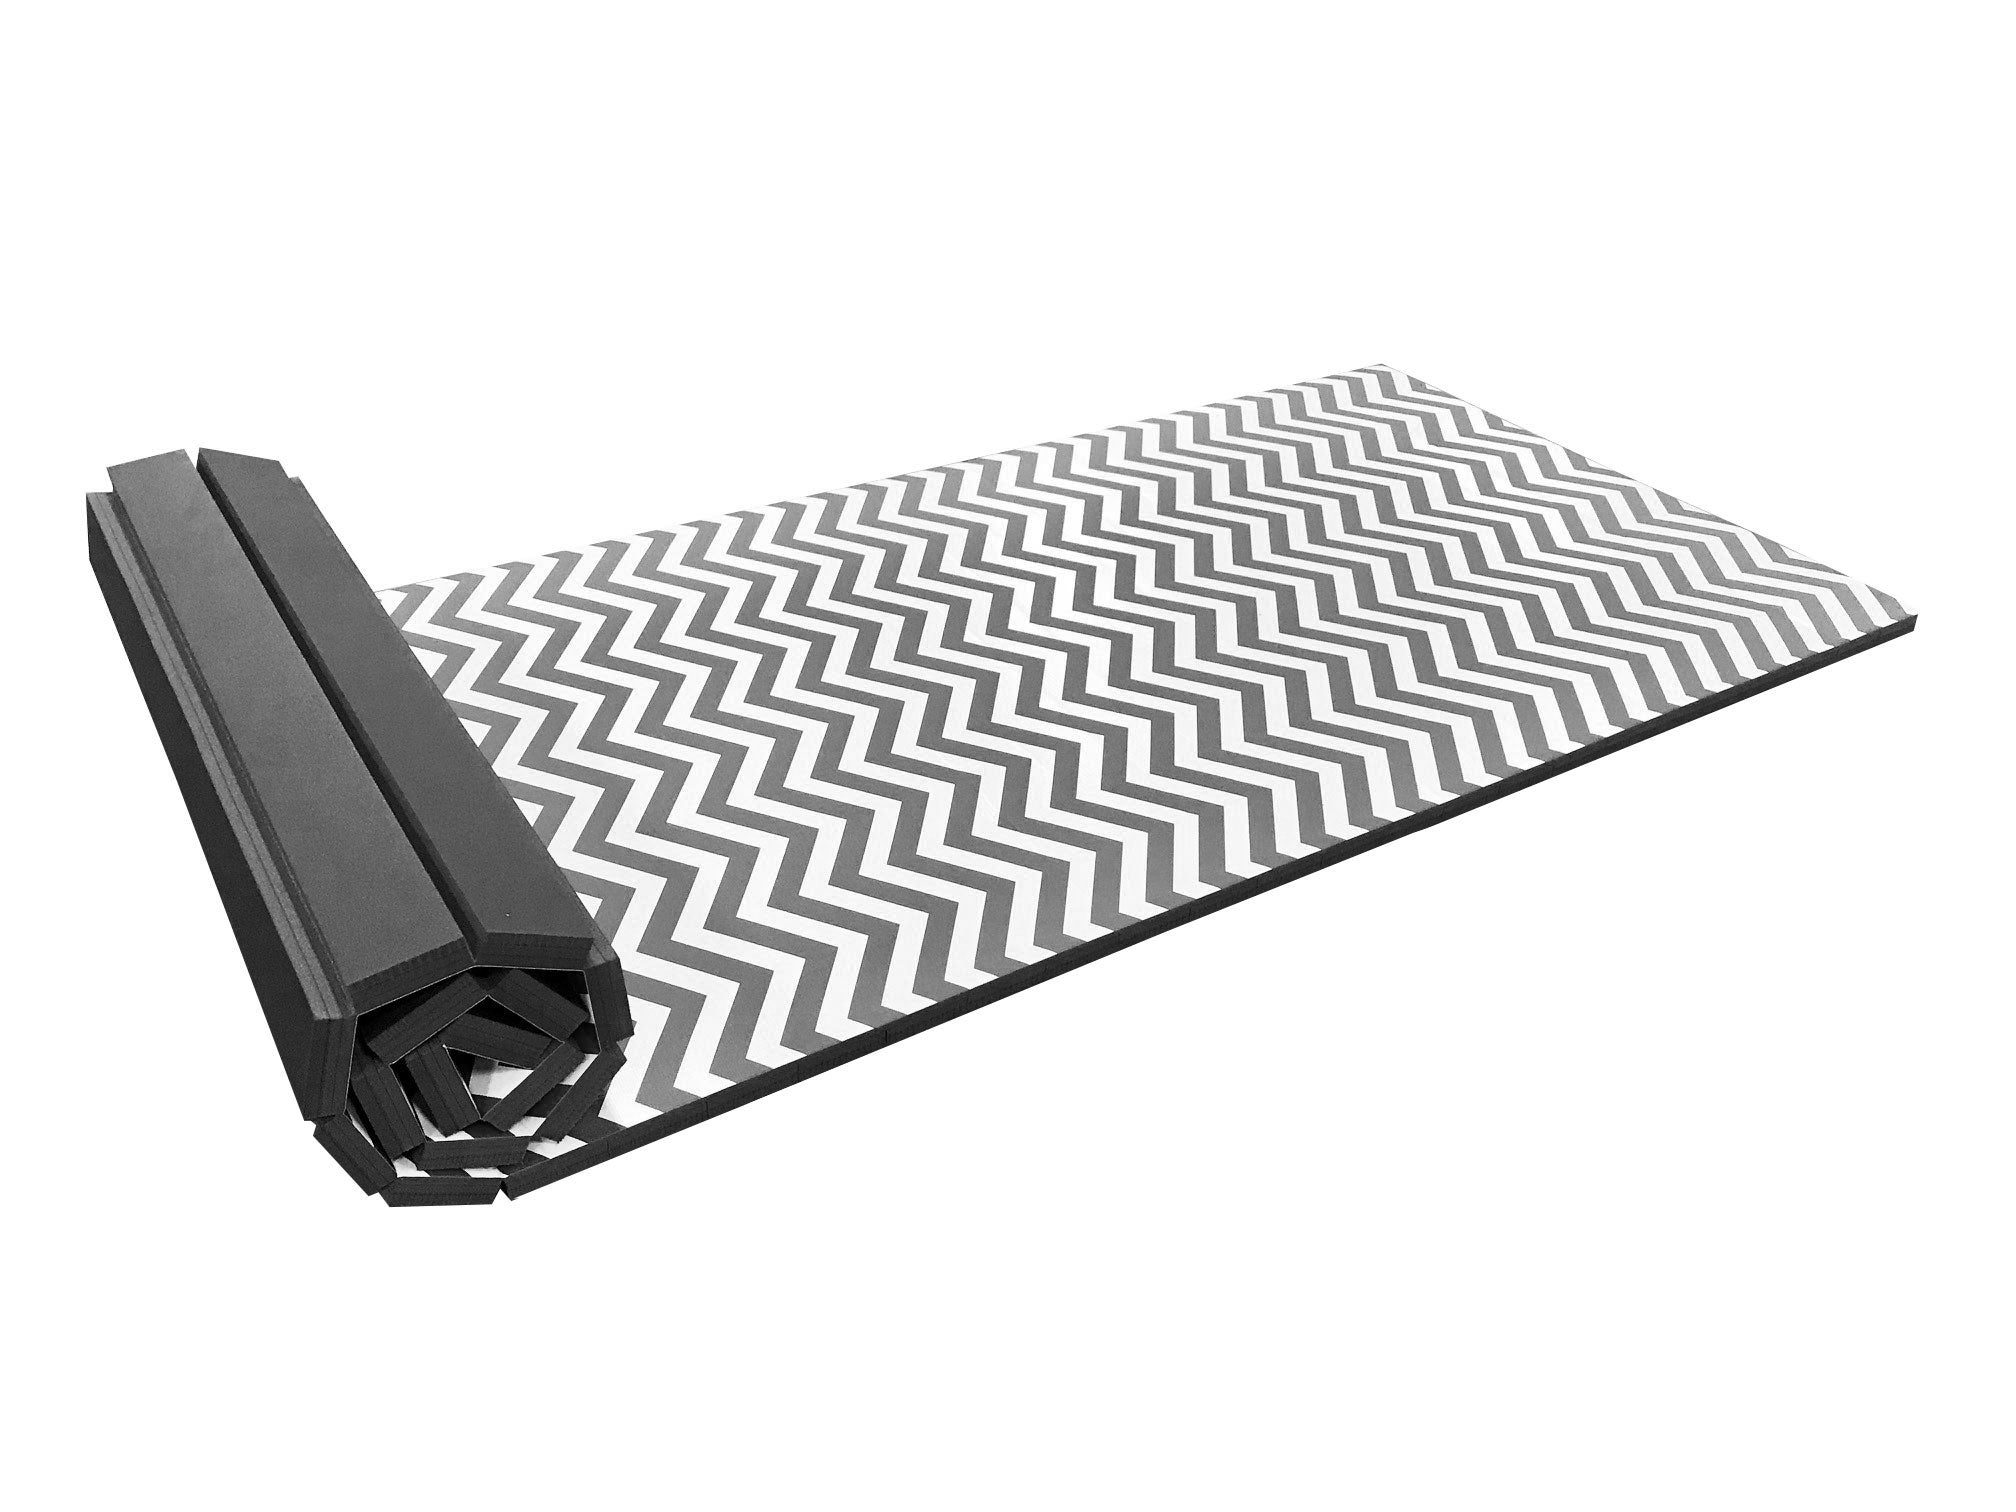 "Roll Up Chevron Zigzag 4' x 8' x 1 3/8"" Advanced Level Gymnastics Mat"